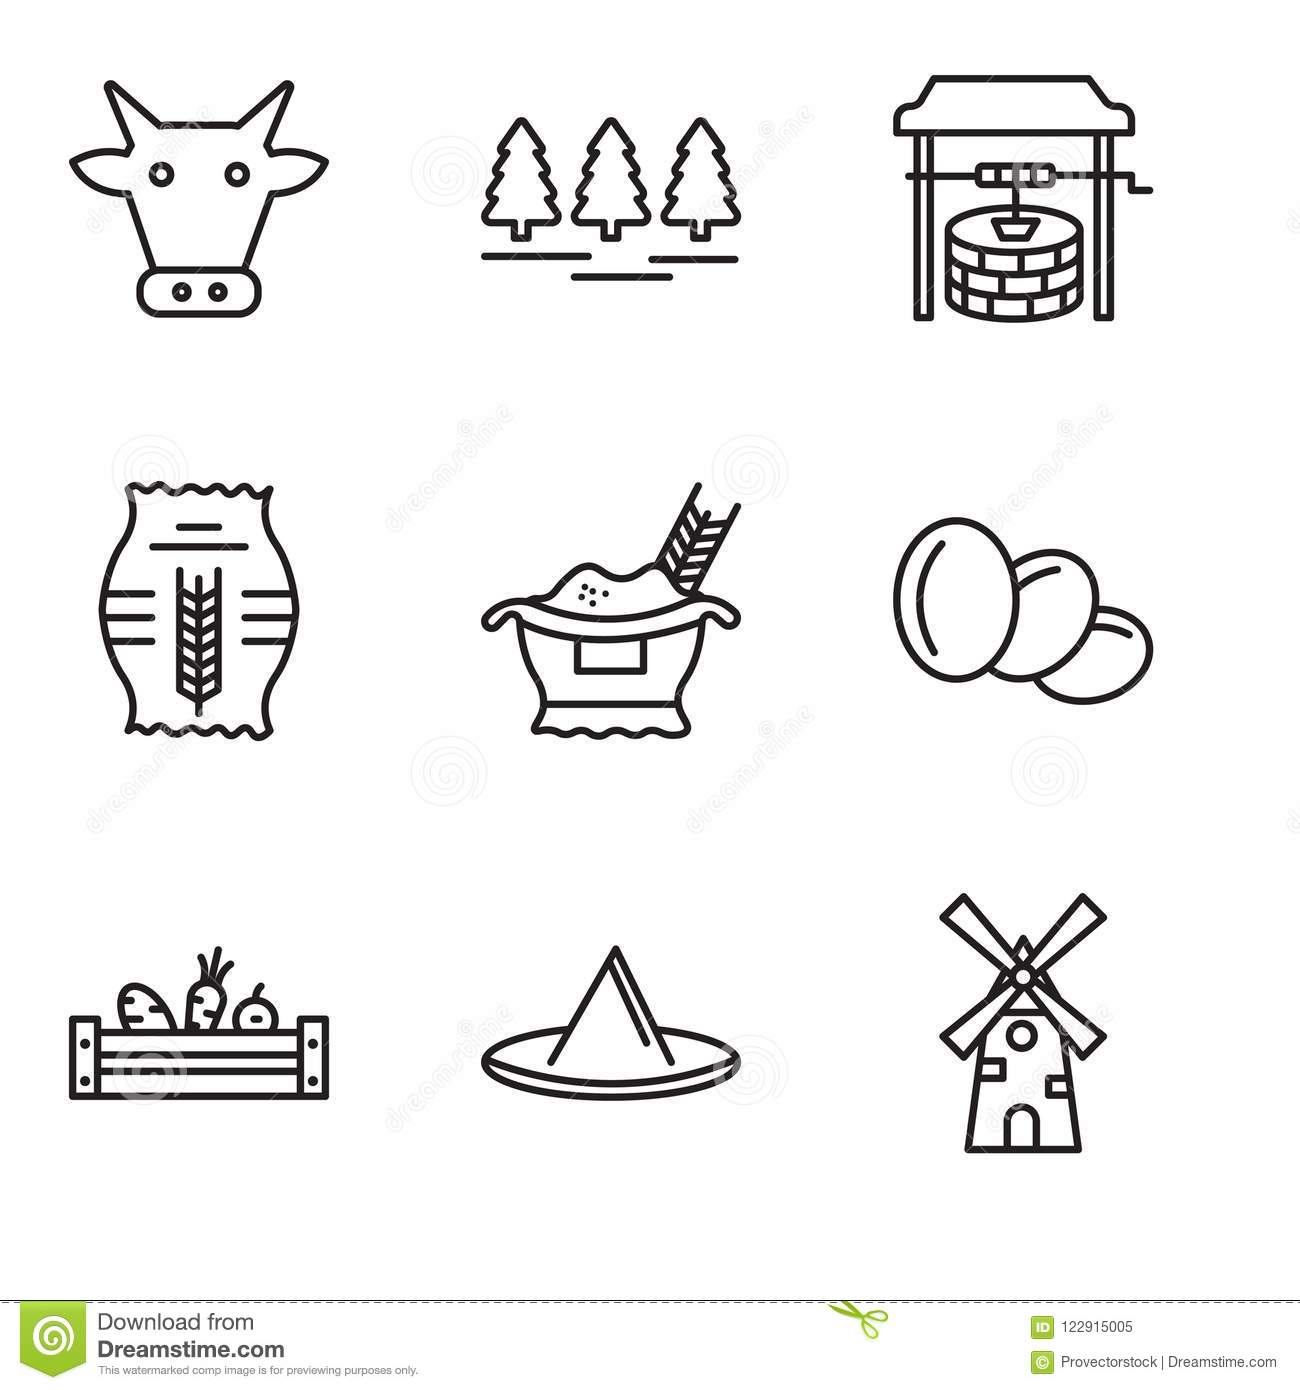 hight resolution of set of 9 simple editable icons such as windmill hat vegetables egg rice grain well forest cow can be used for mobile pixel perfect vector icon